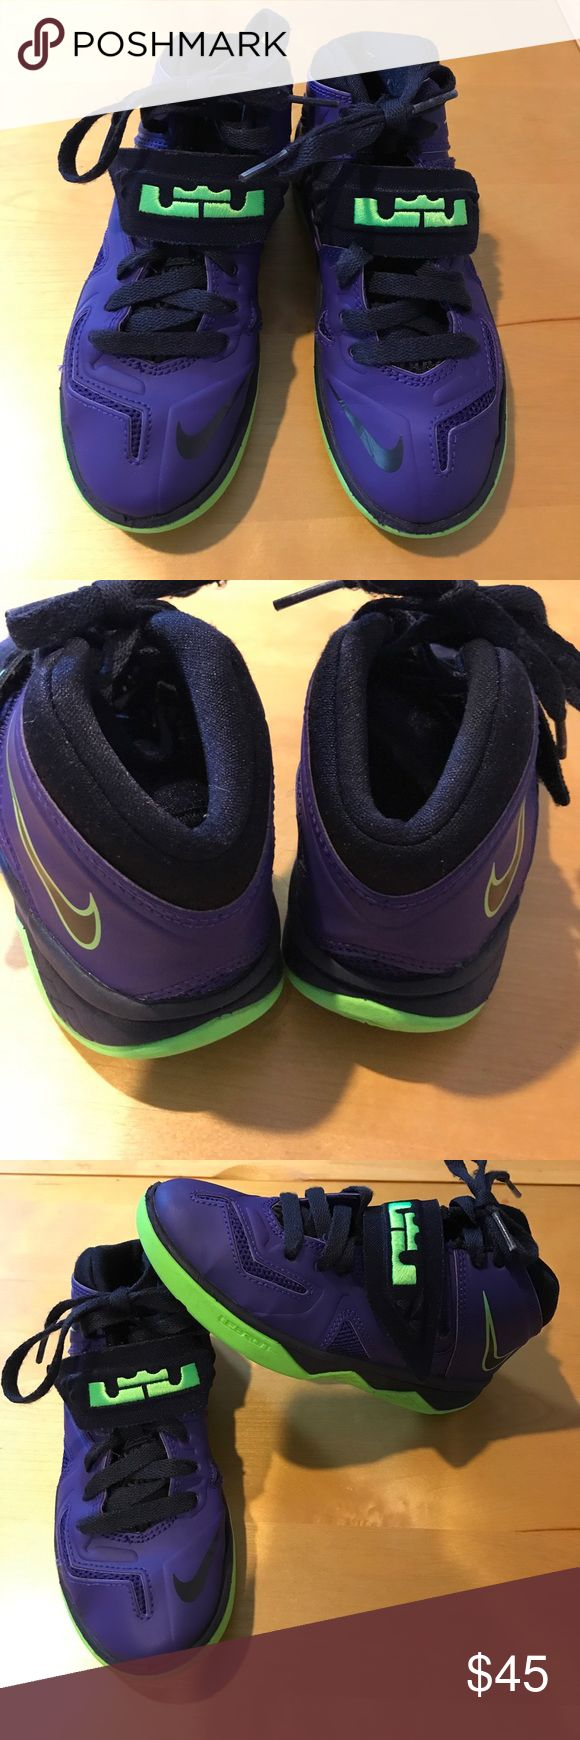 Kids sneakers Kids gently worn Nike Lebron sneakers. These are is good shape. There is wear and marks around the shoes from being worn. However, they almost look new. Soles and insoles may need to be cleaned to your liking. Nike Shoes Sneakers